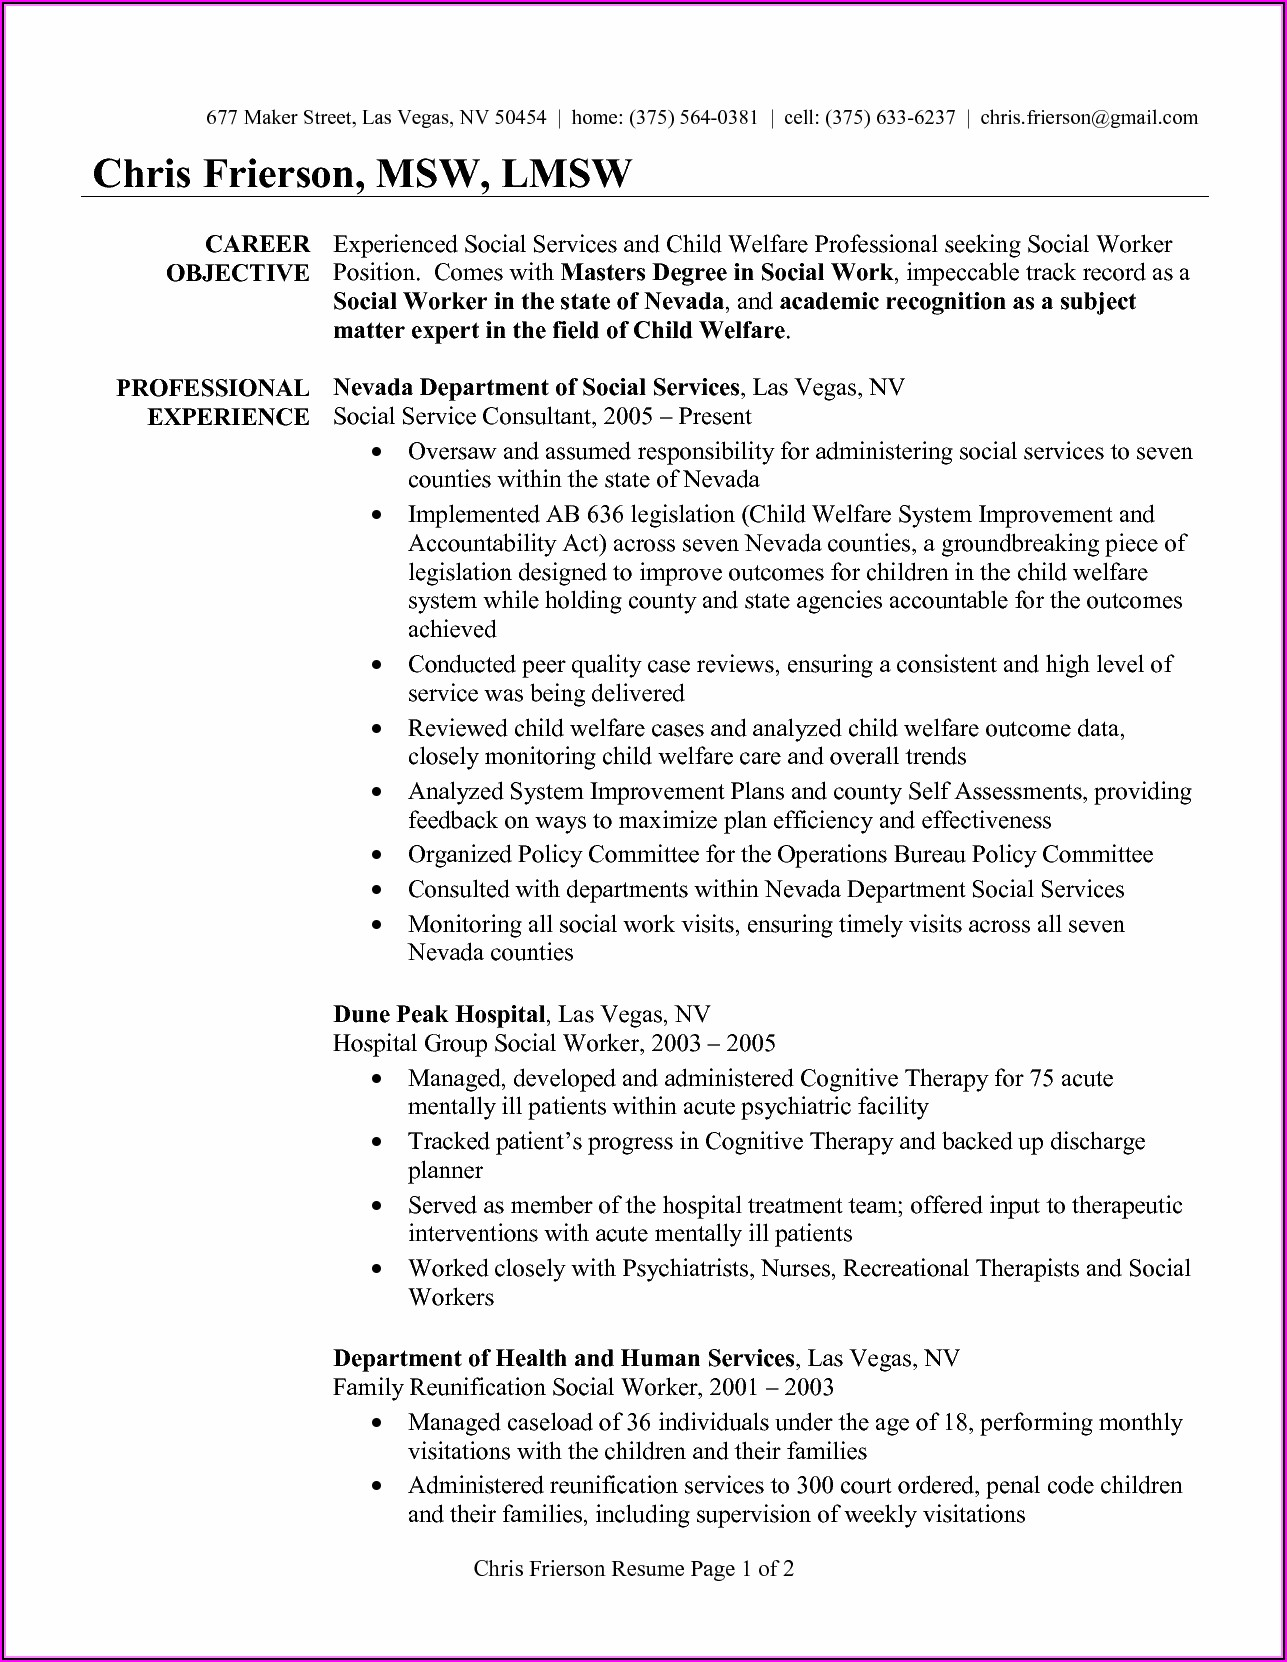 professional resume writing services ct the best of writers las vegas nv food attendant Resume Professional Resume Services